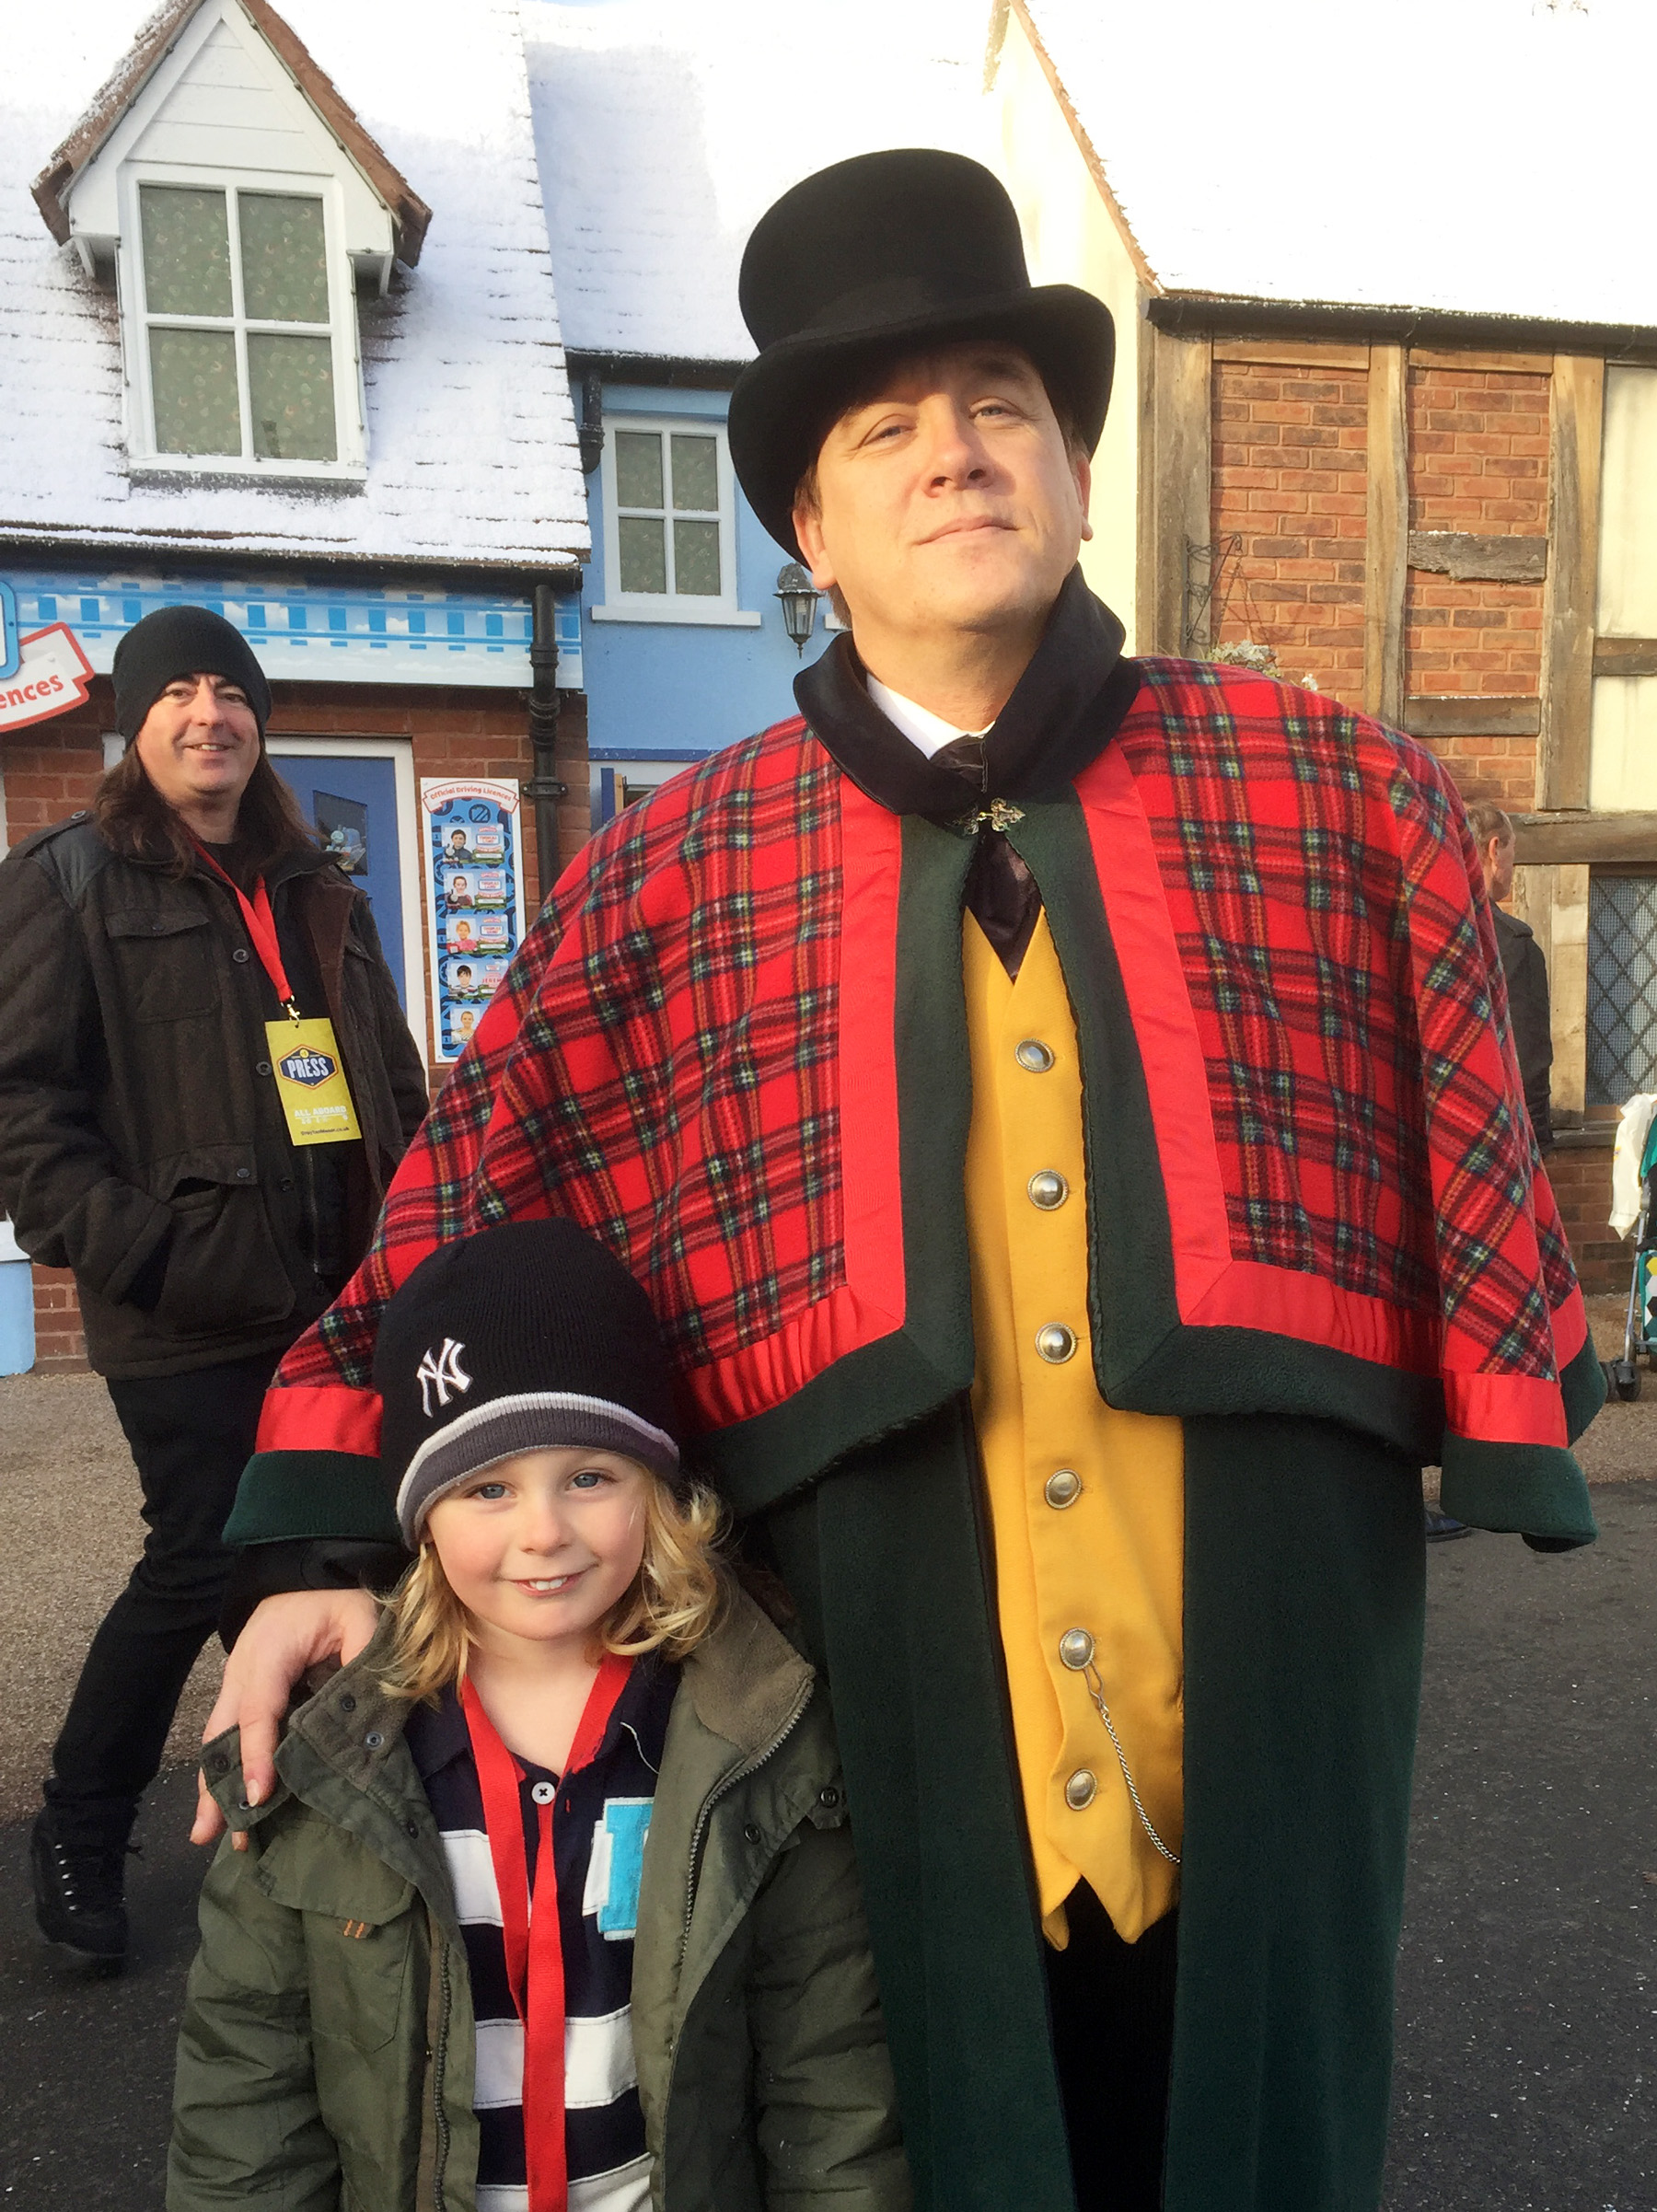 Jacob with the Fat Controller and daddy photobombing the picture!